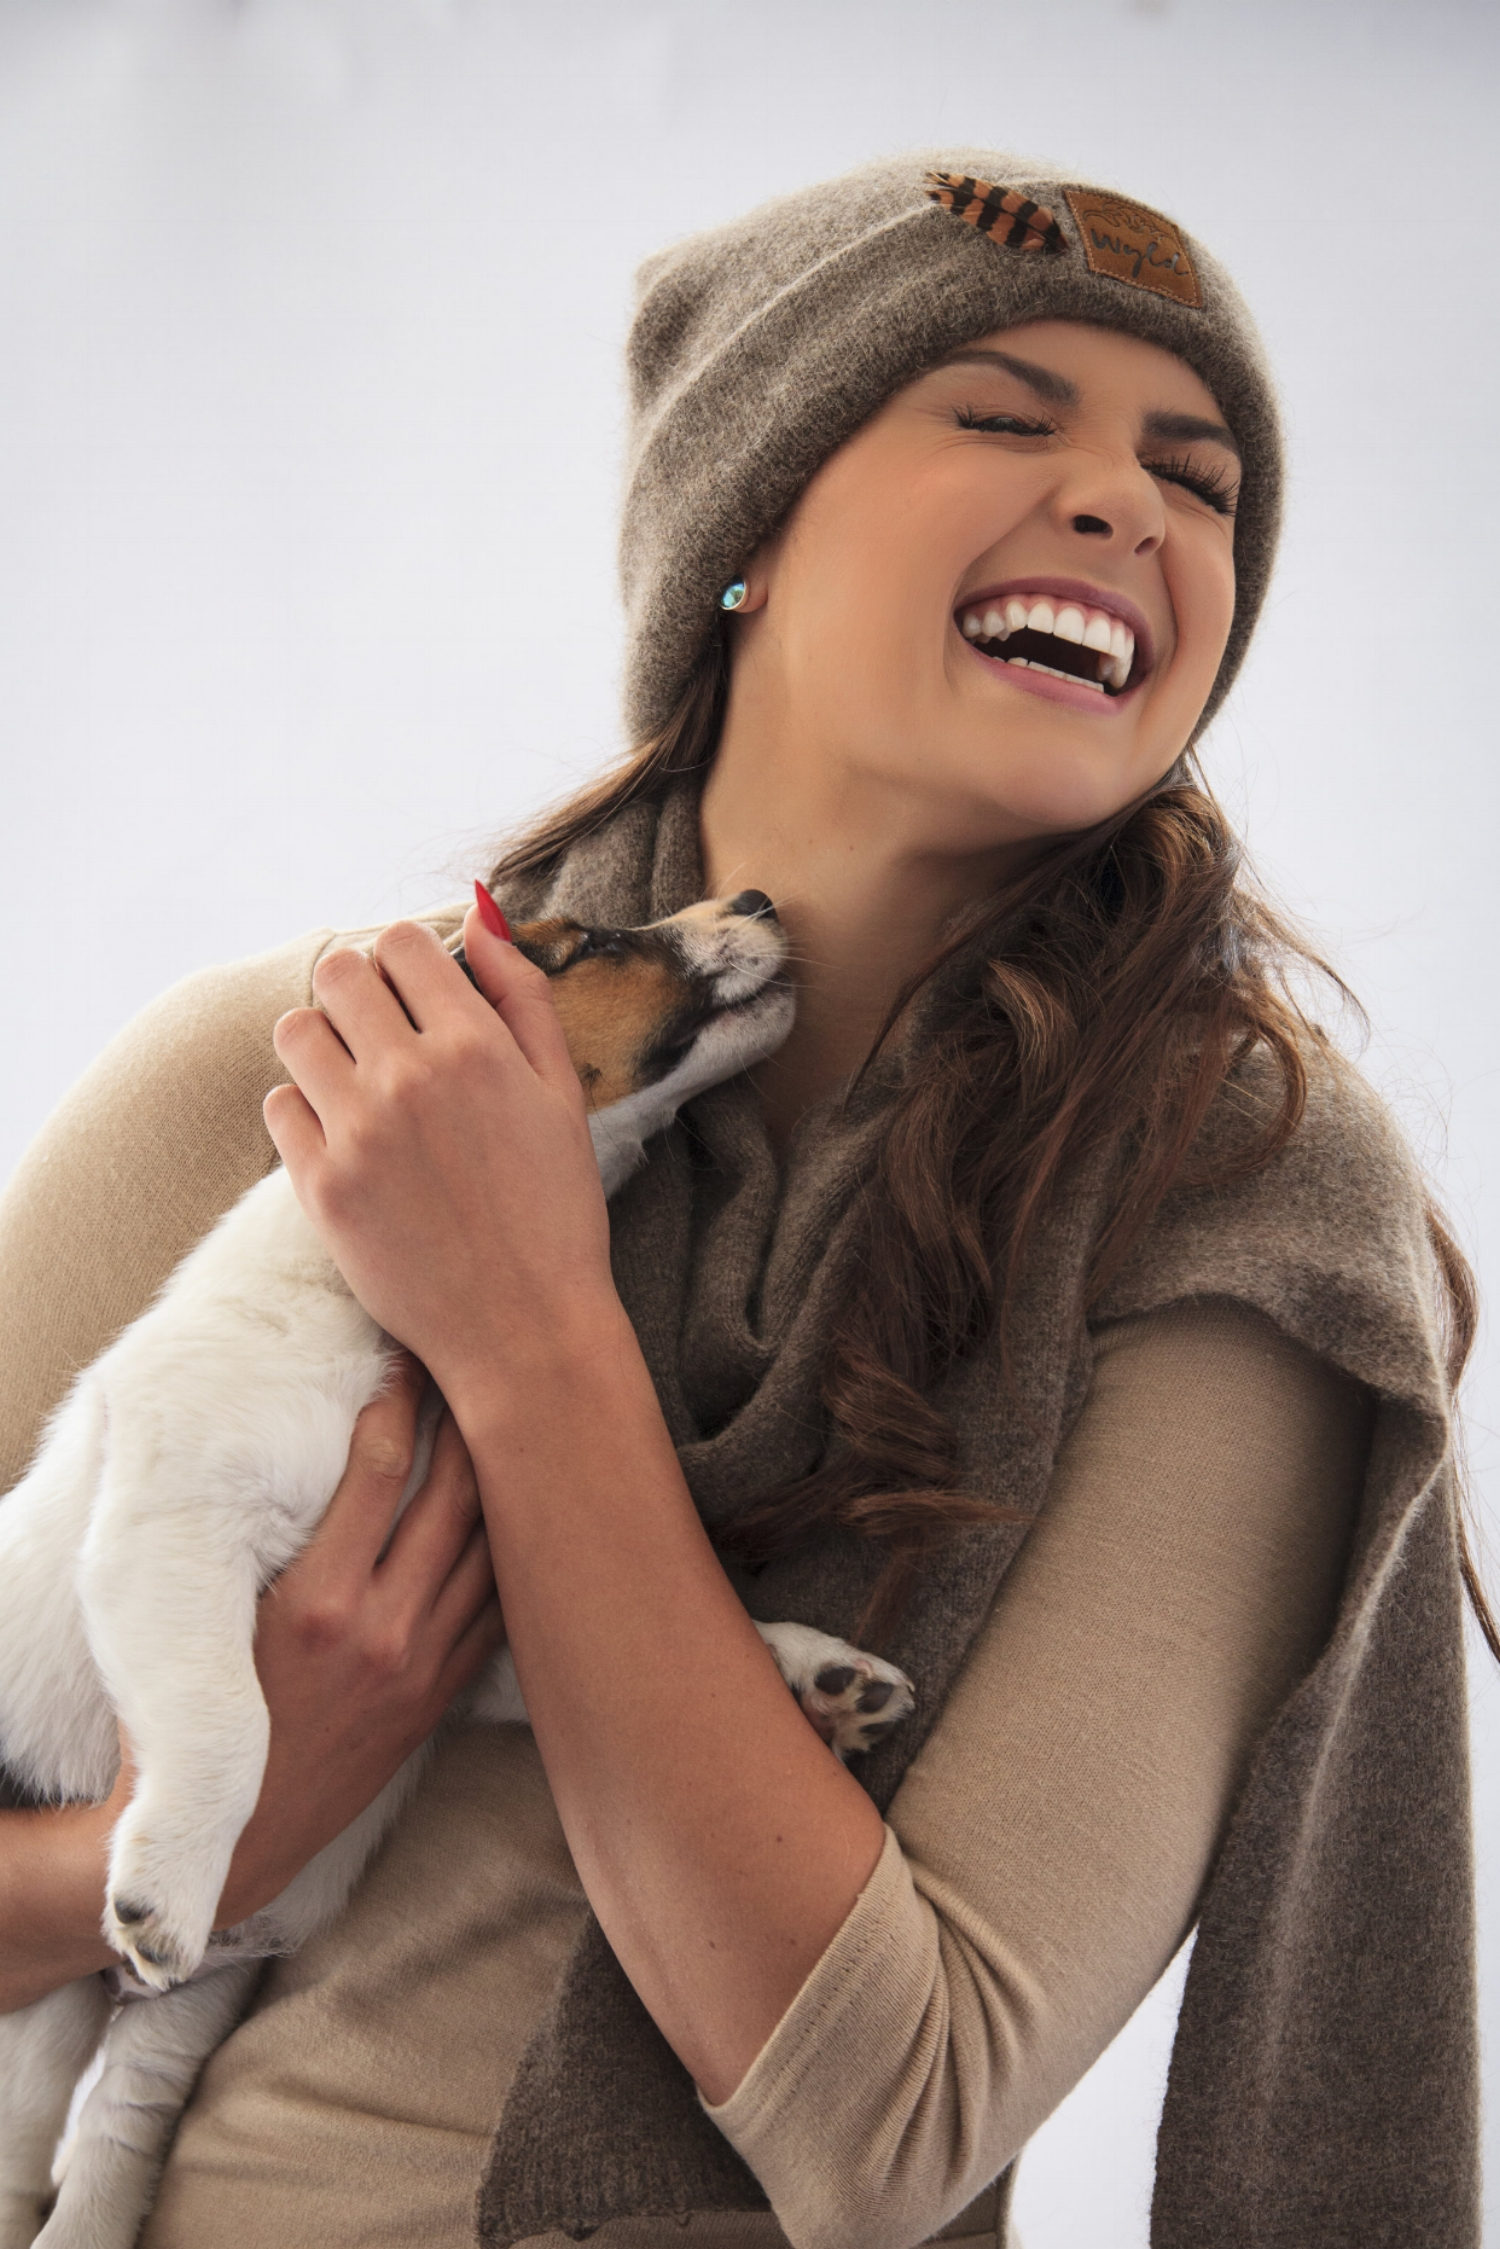 Miss world New Zealand with Lexi wearing Weka Woo hat and Wyld scarf